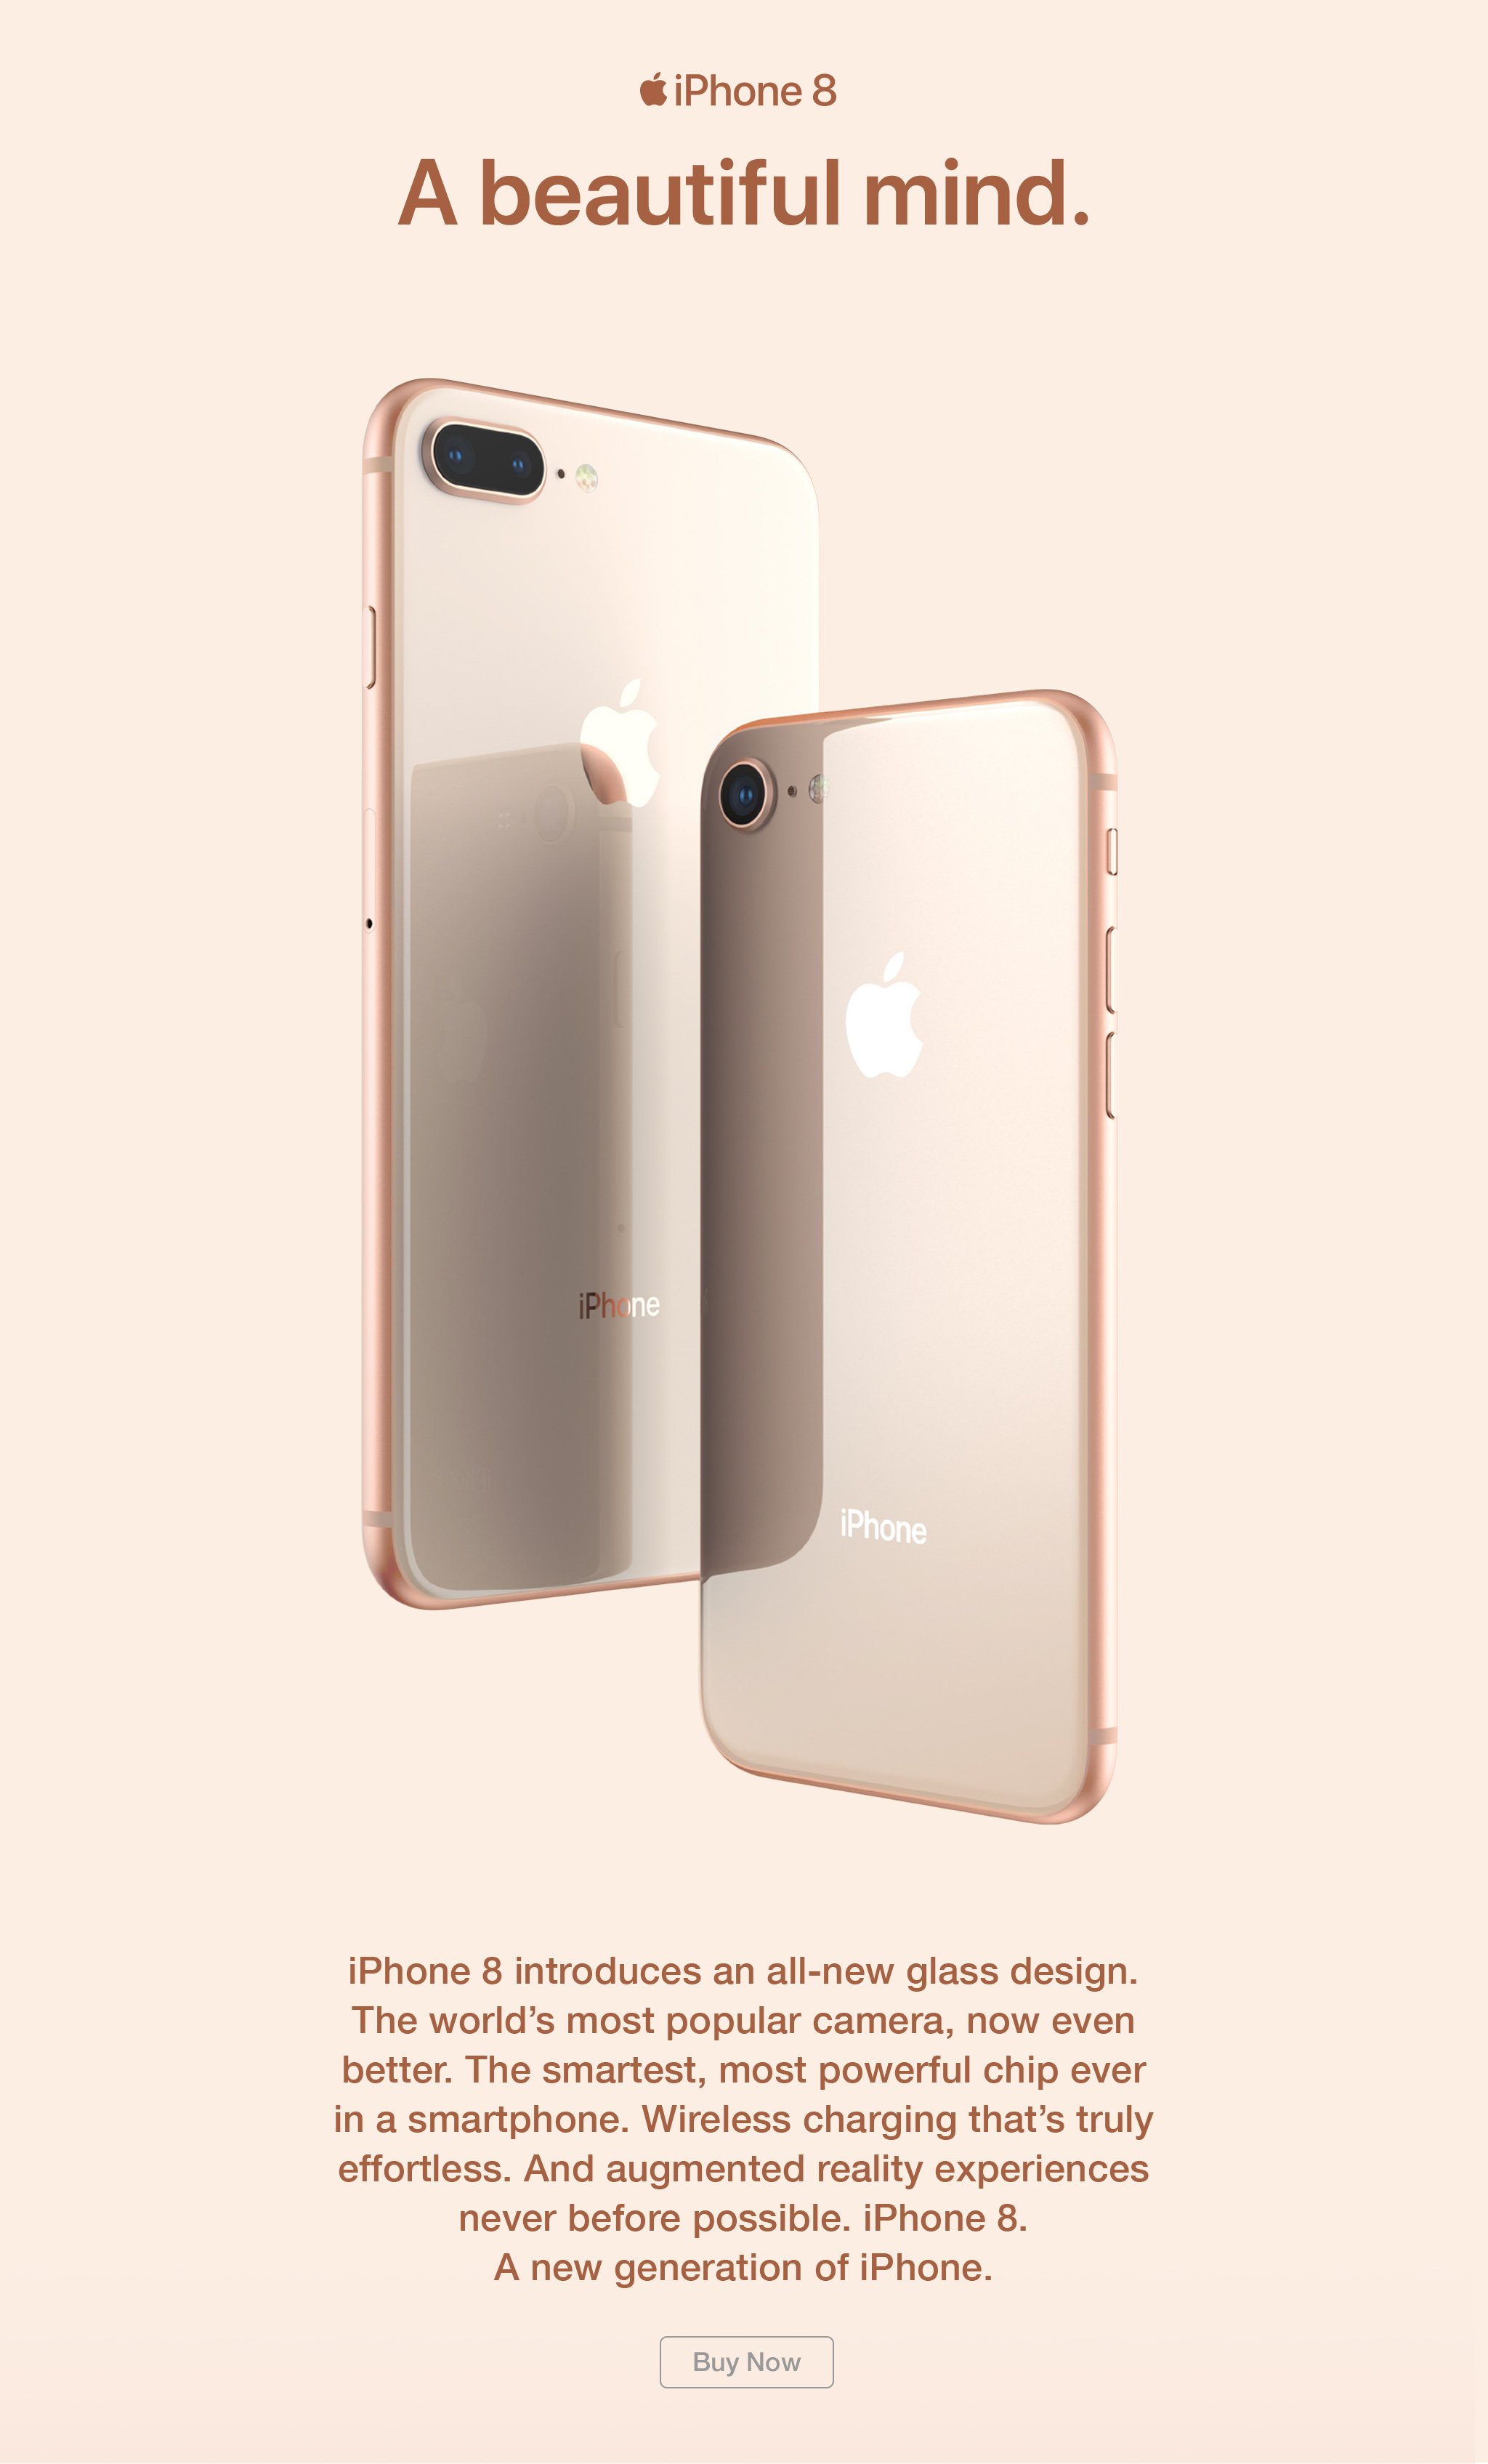 iPhone 8 Buy Now